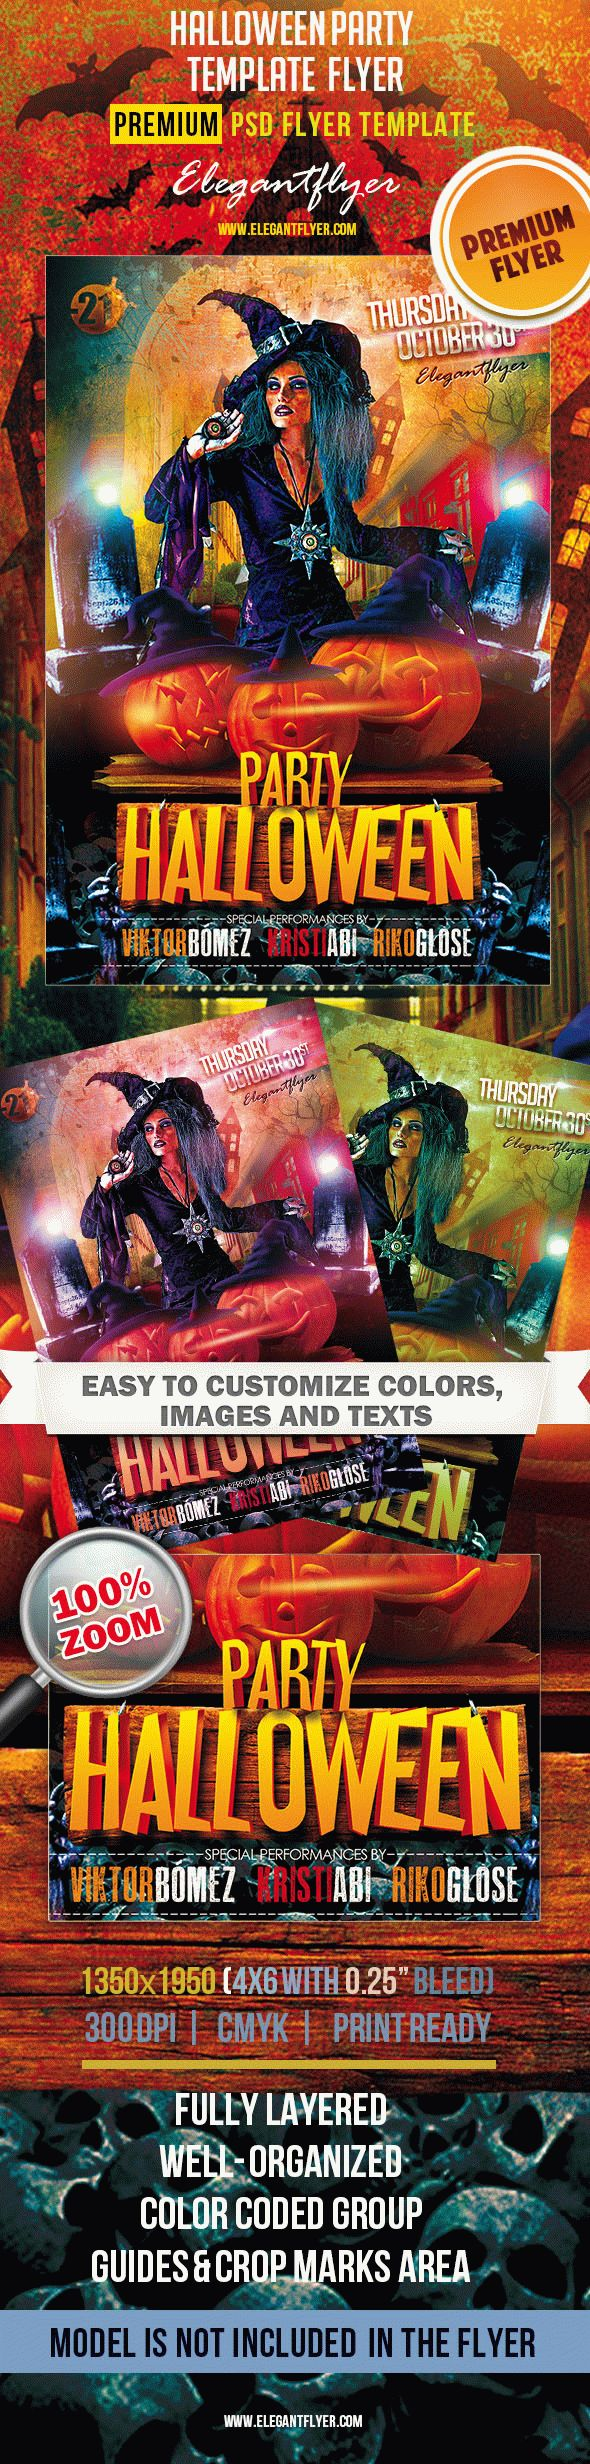 Halloween Party – Premium Сlub Flyer PSD Template